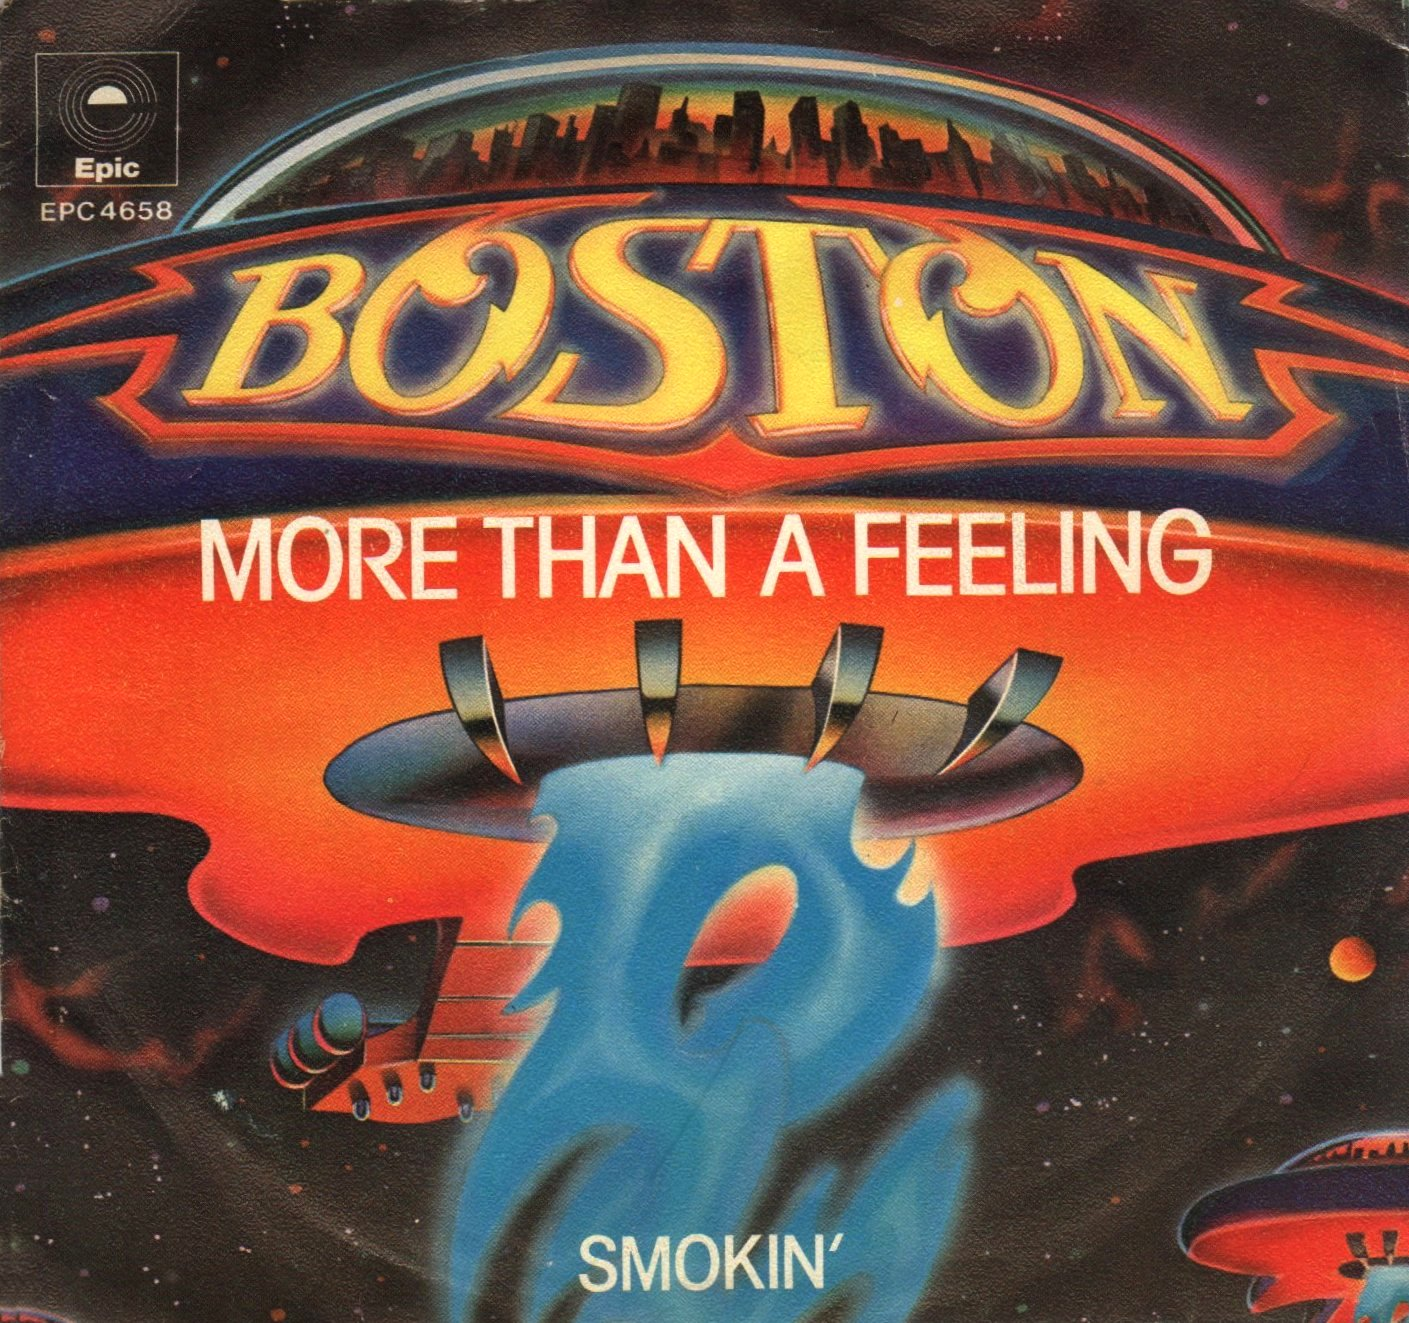 Single More than a feeling del grupo Boston